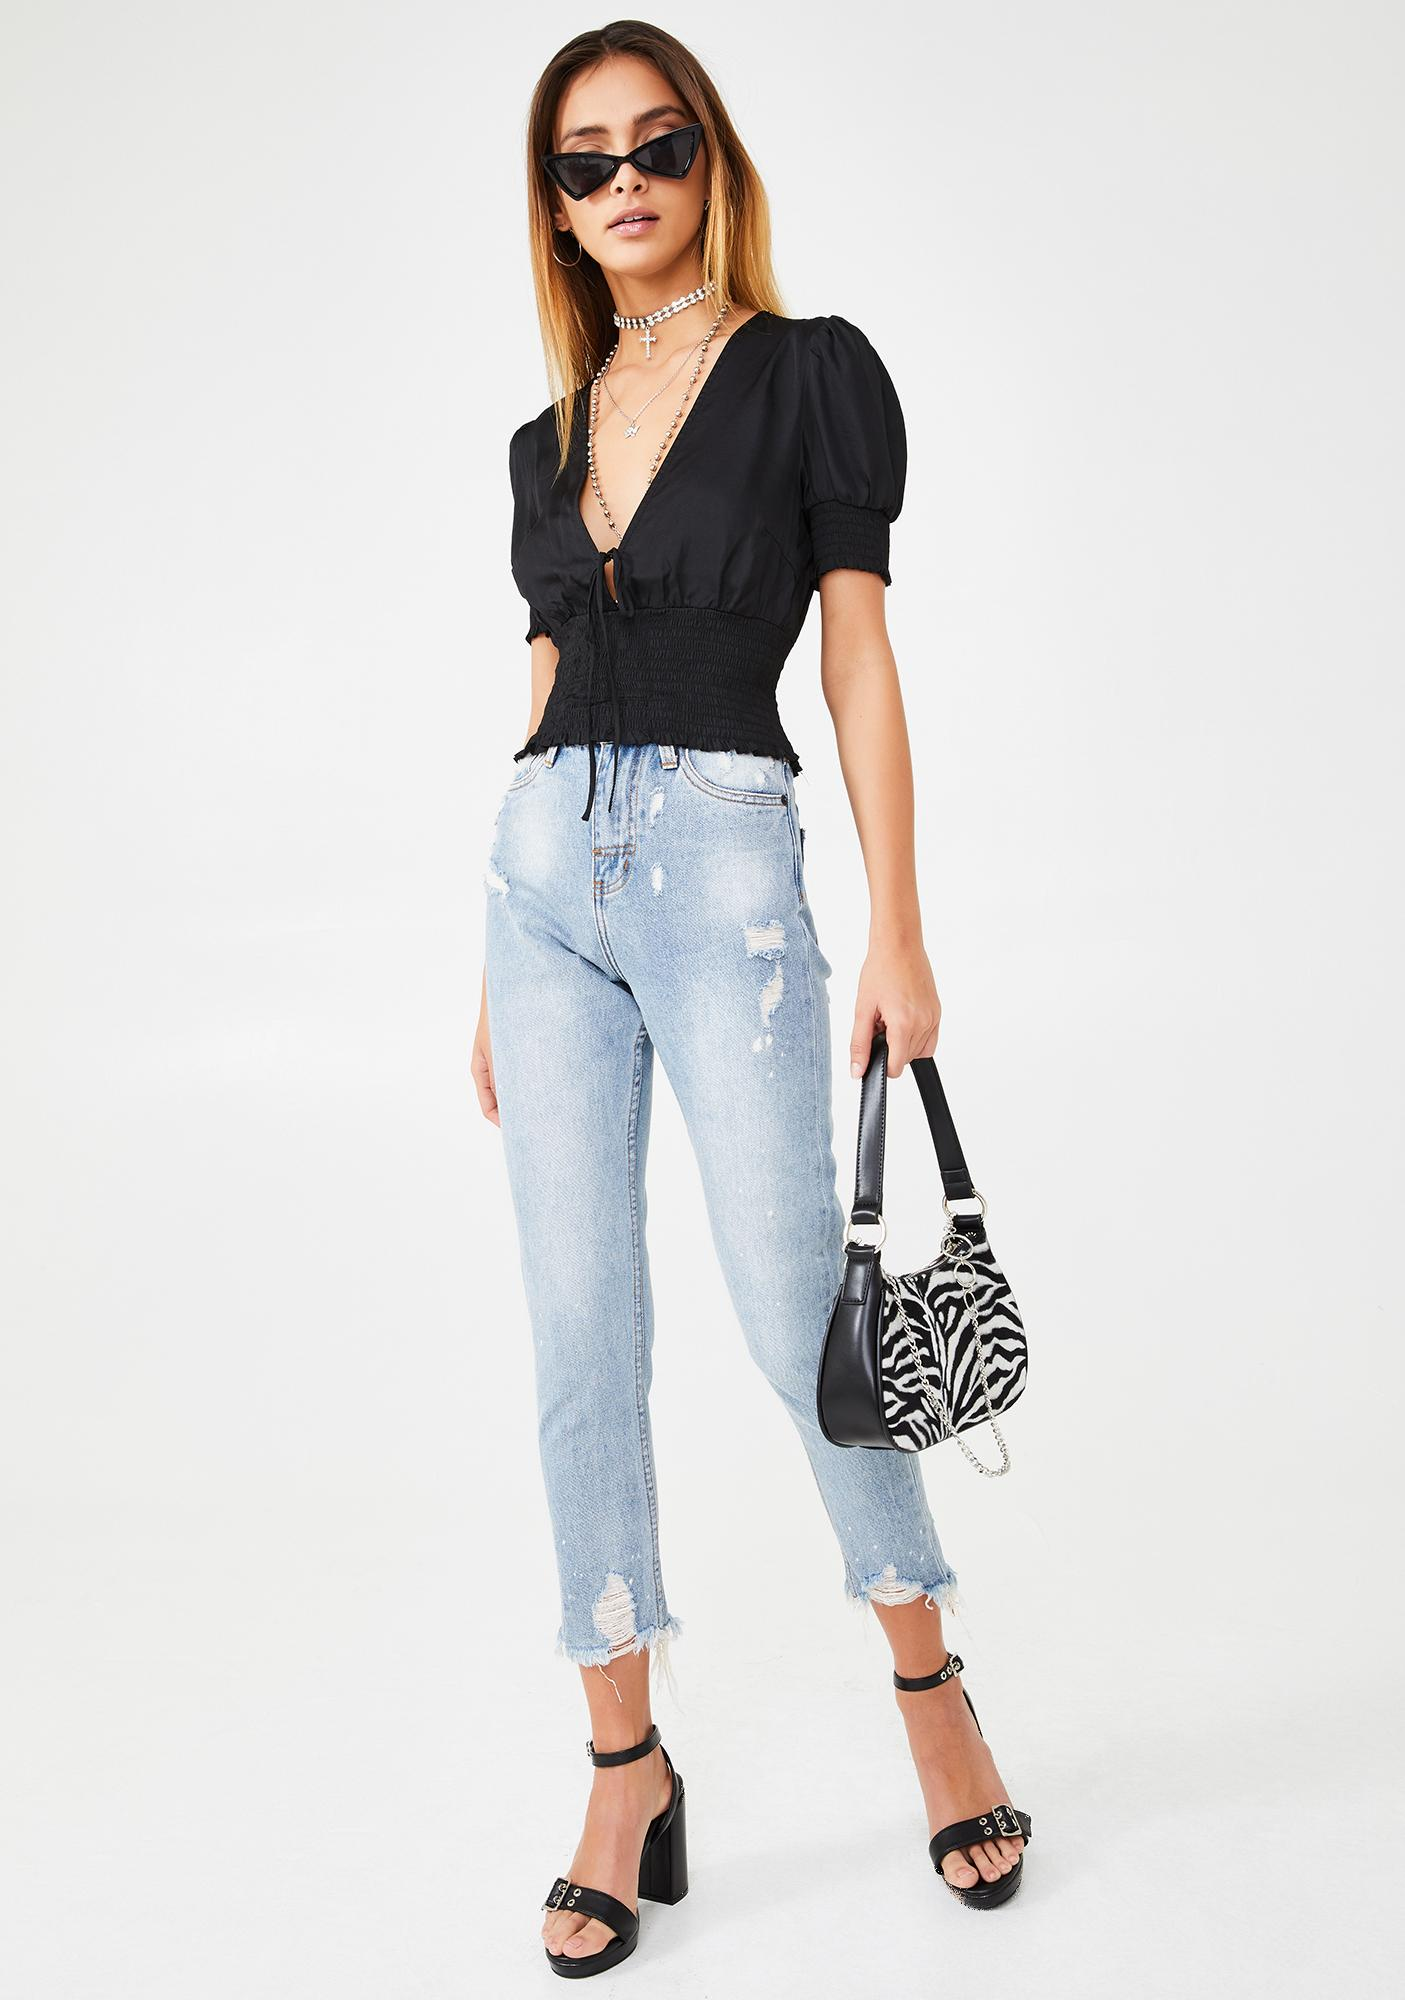 Day Trippin' Blouse Top